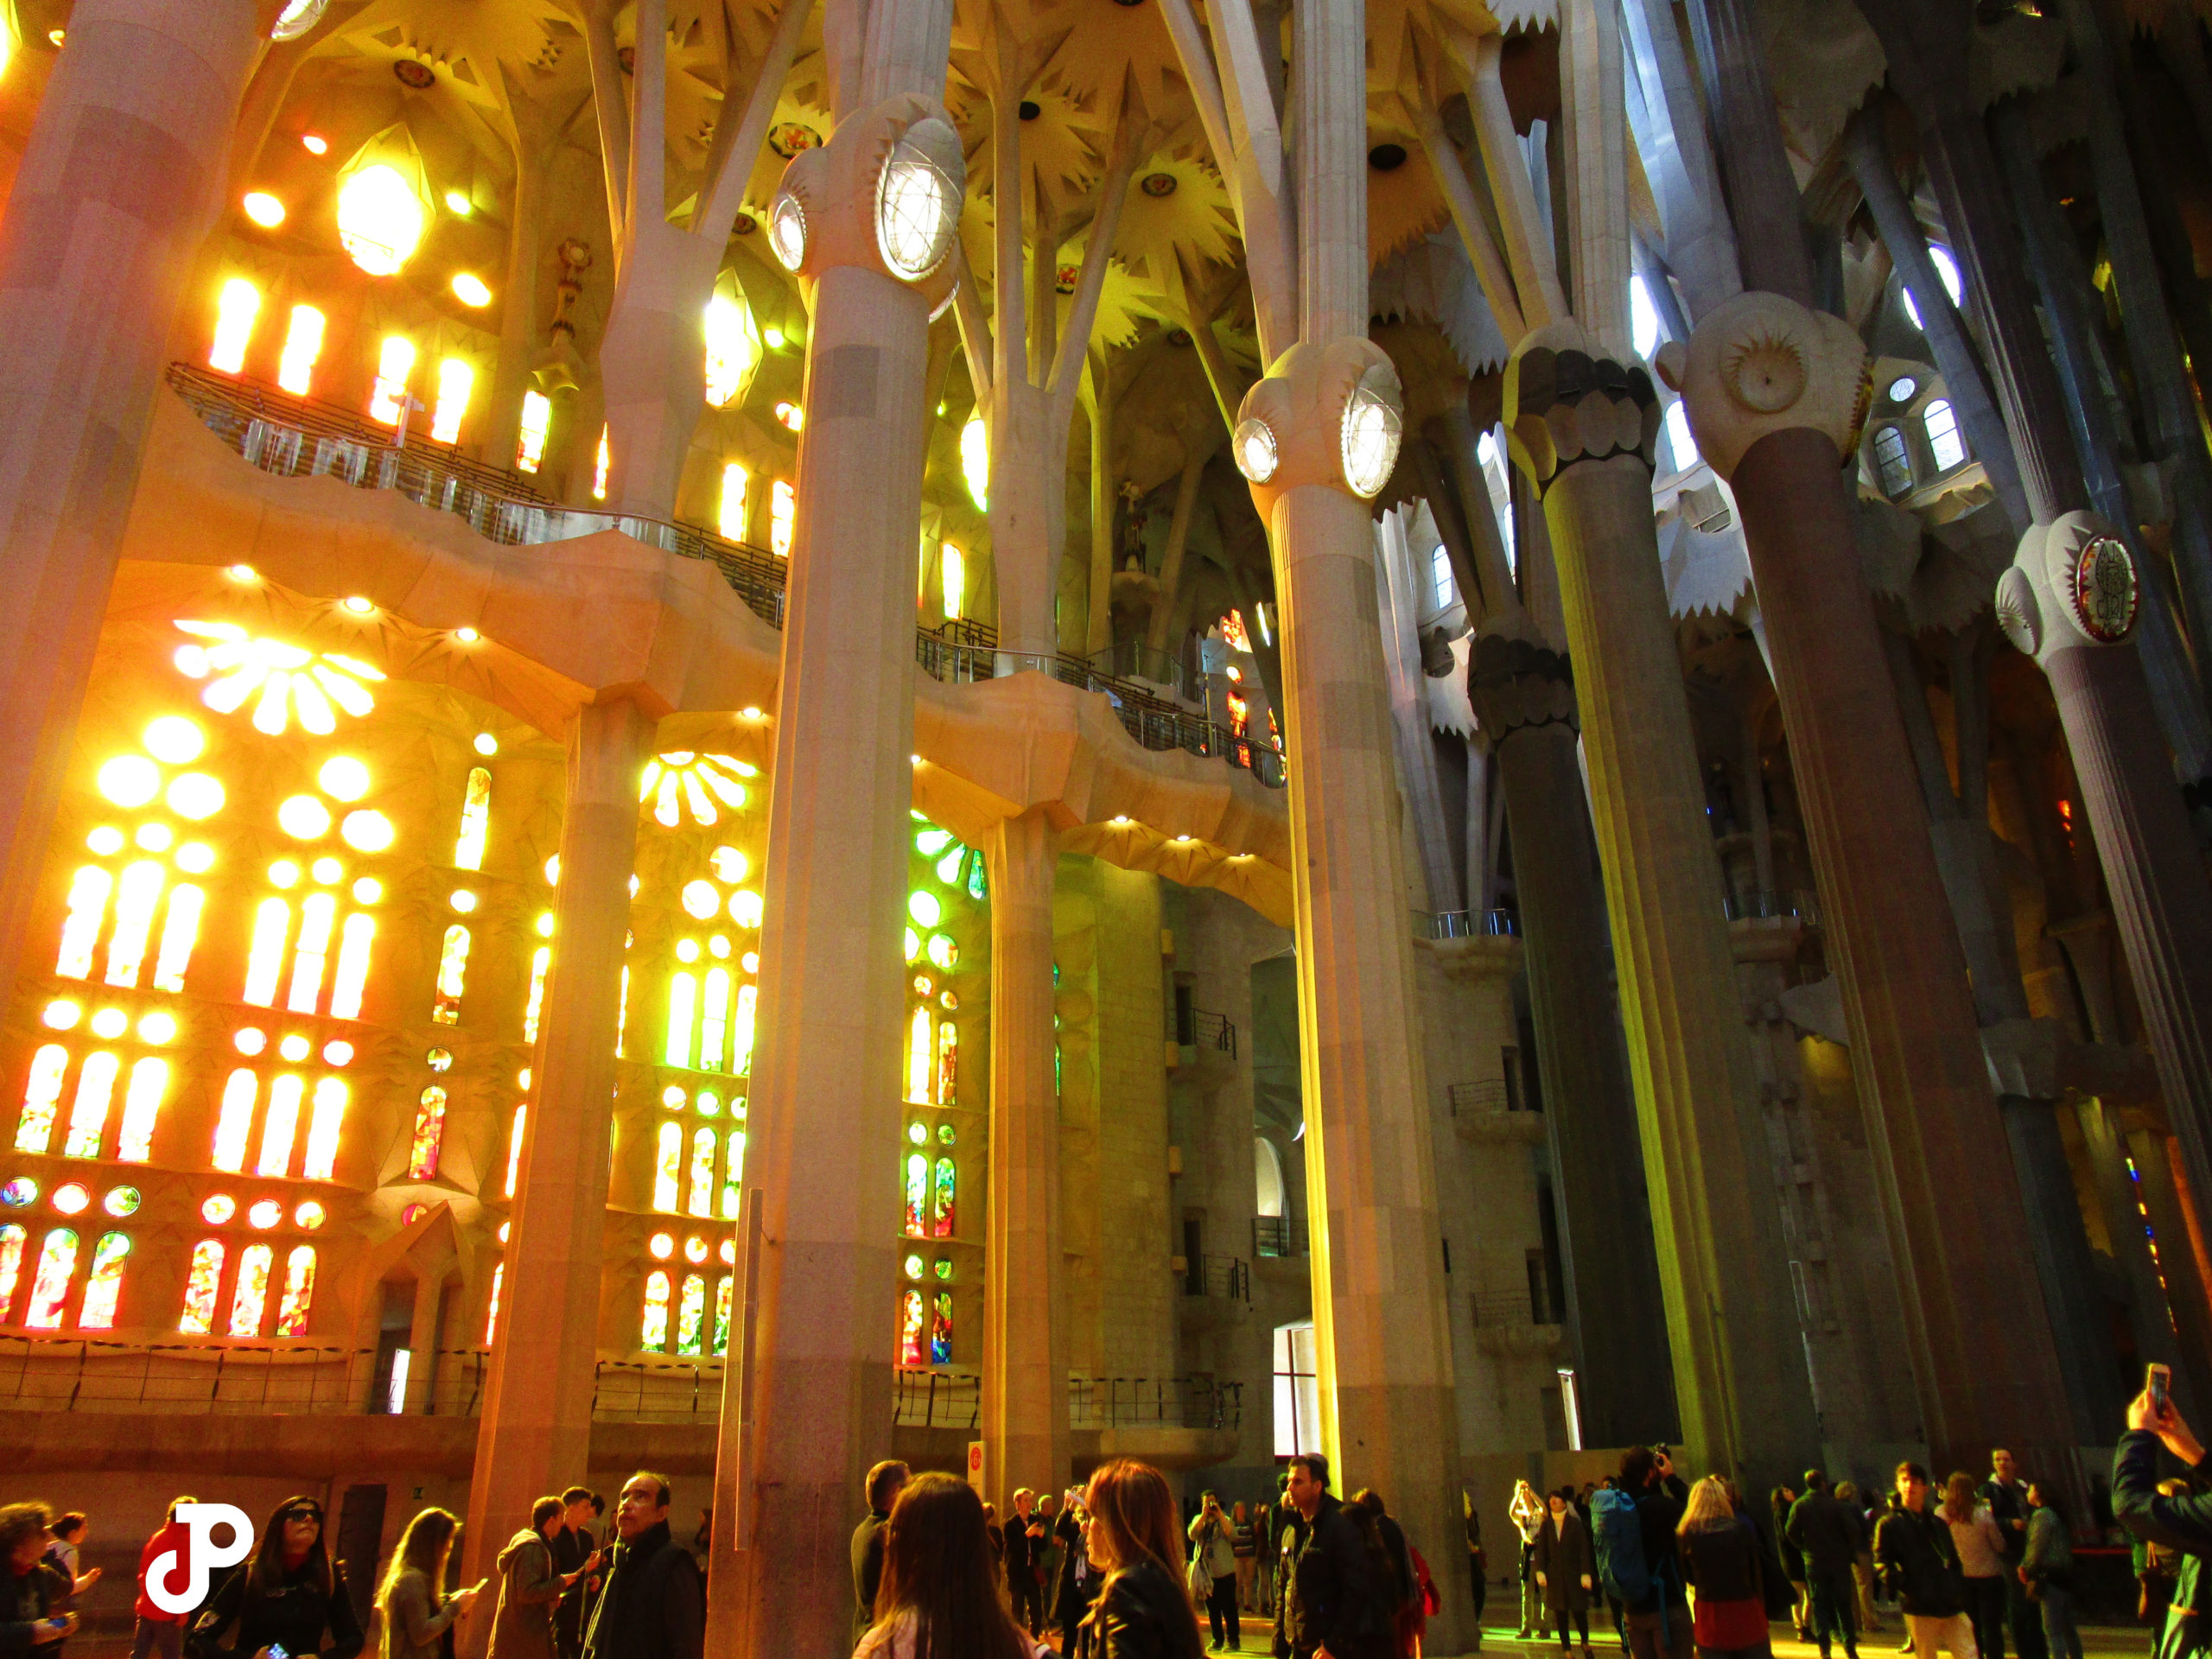 sunlight filtering through the colorful stained glass windows of La Sagrada Familia, washing the interior in bright orange light